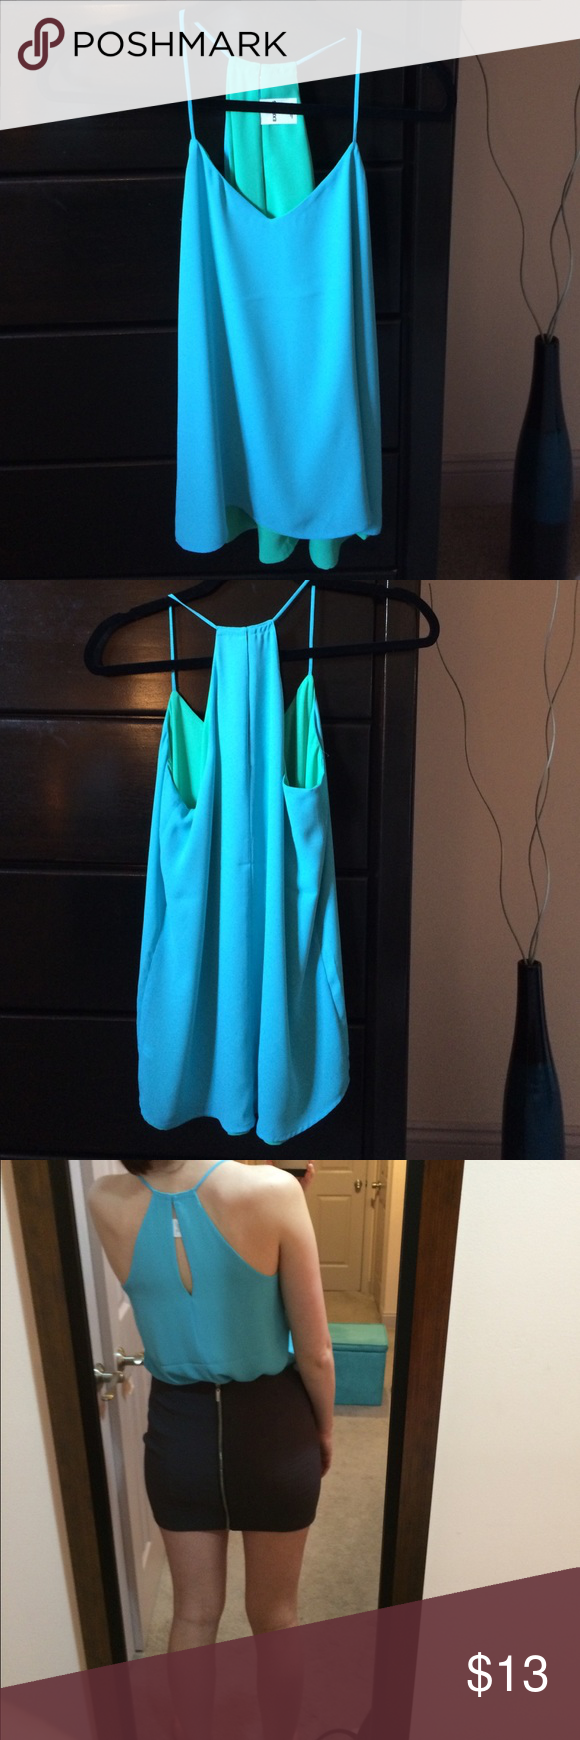 NWOT reversible EXPRESS top Reversible. NWOT. One side is a light turquoisey green, reverse is a light sky blue. Size is an XS but fits S too. (I am a small). Express Tops Tank Tops